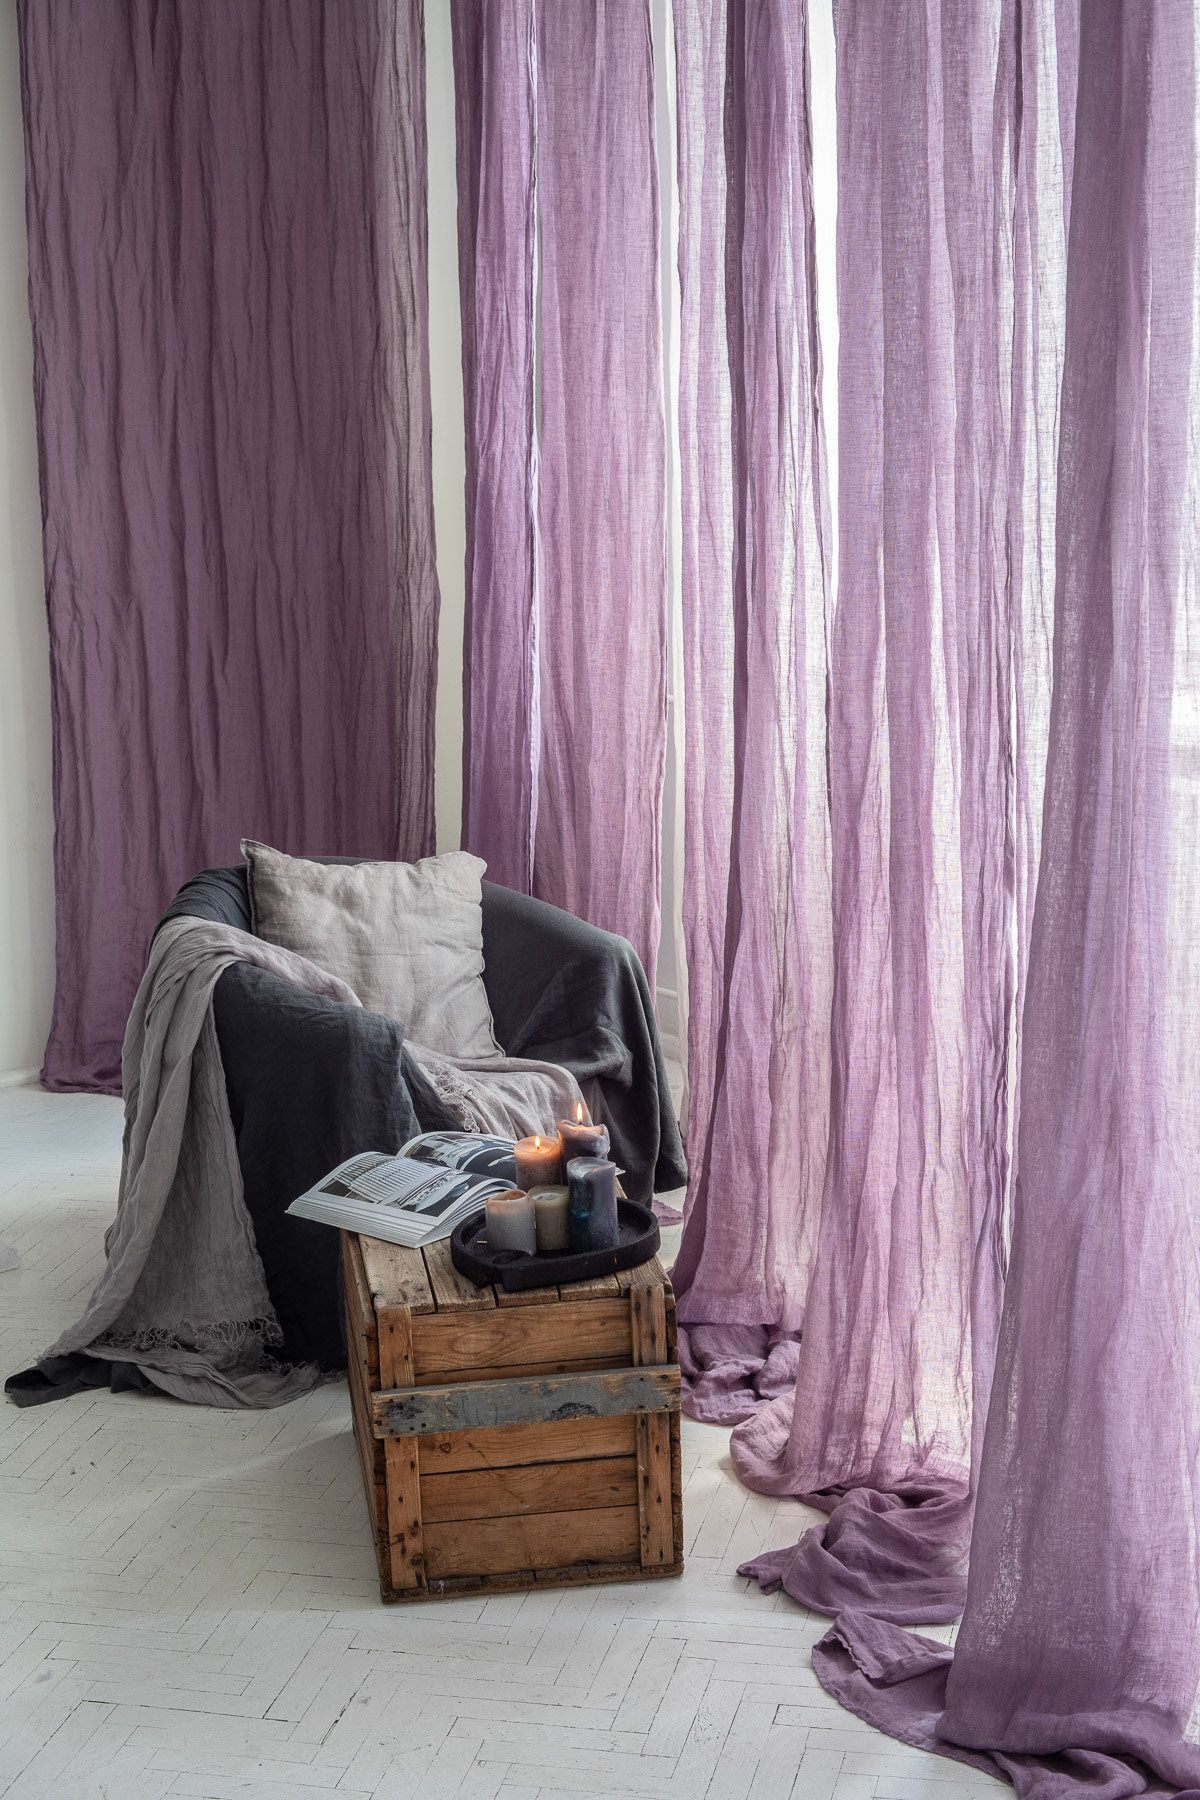 Lavender Sheer Curtains Sheer Linen Curtains In Lavender Color Breezy Violet Curtain